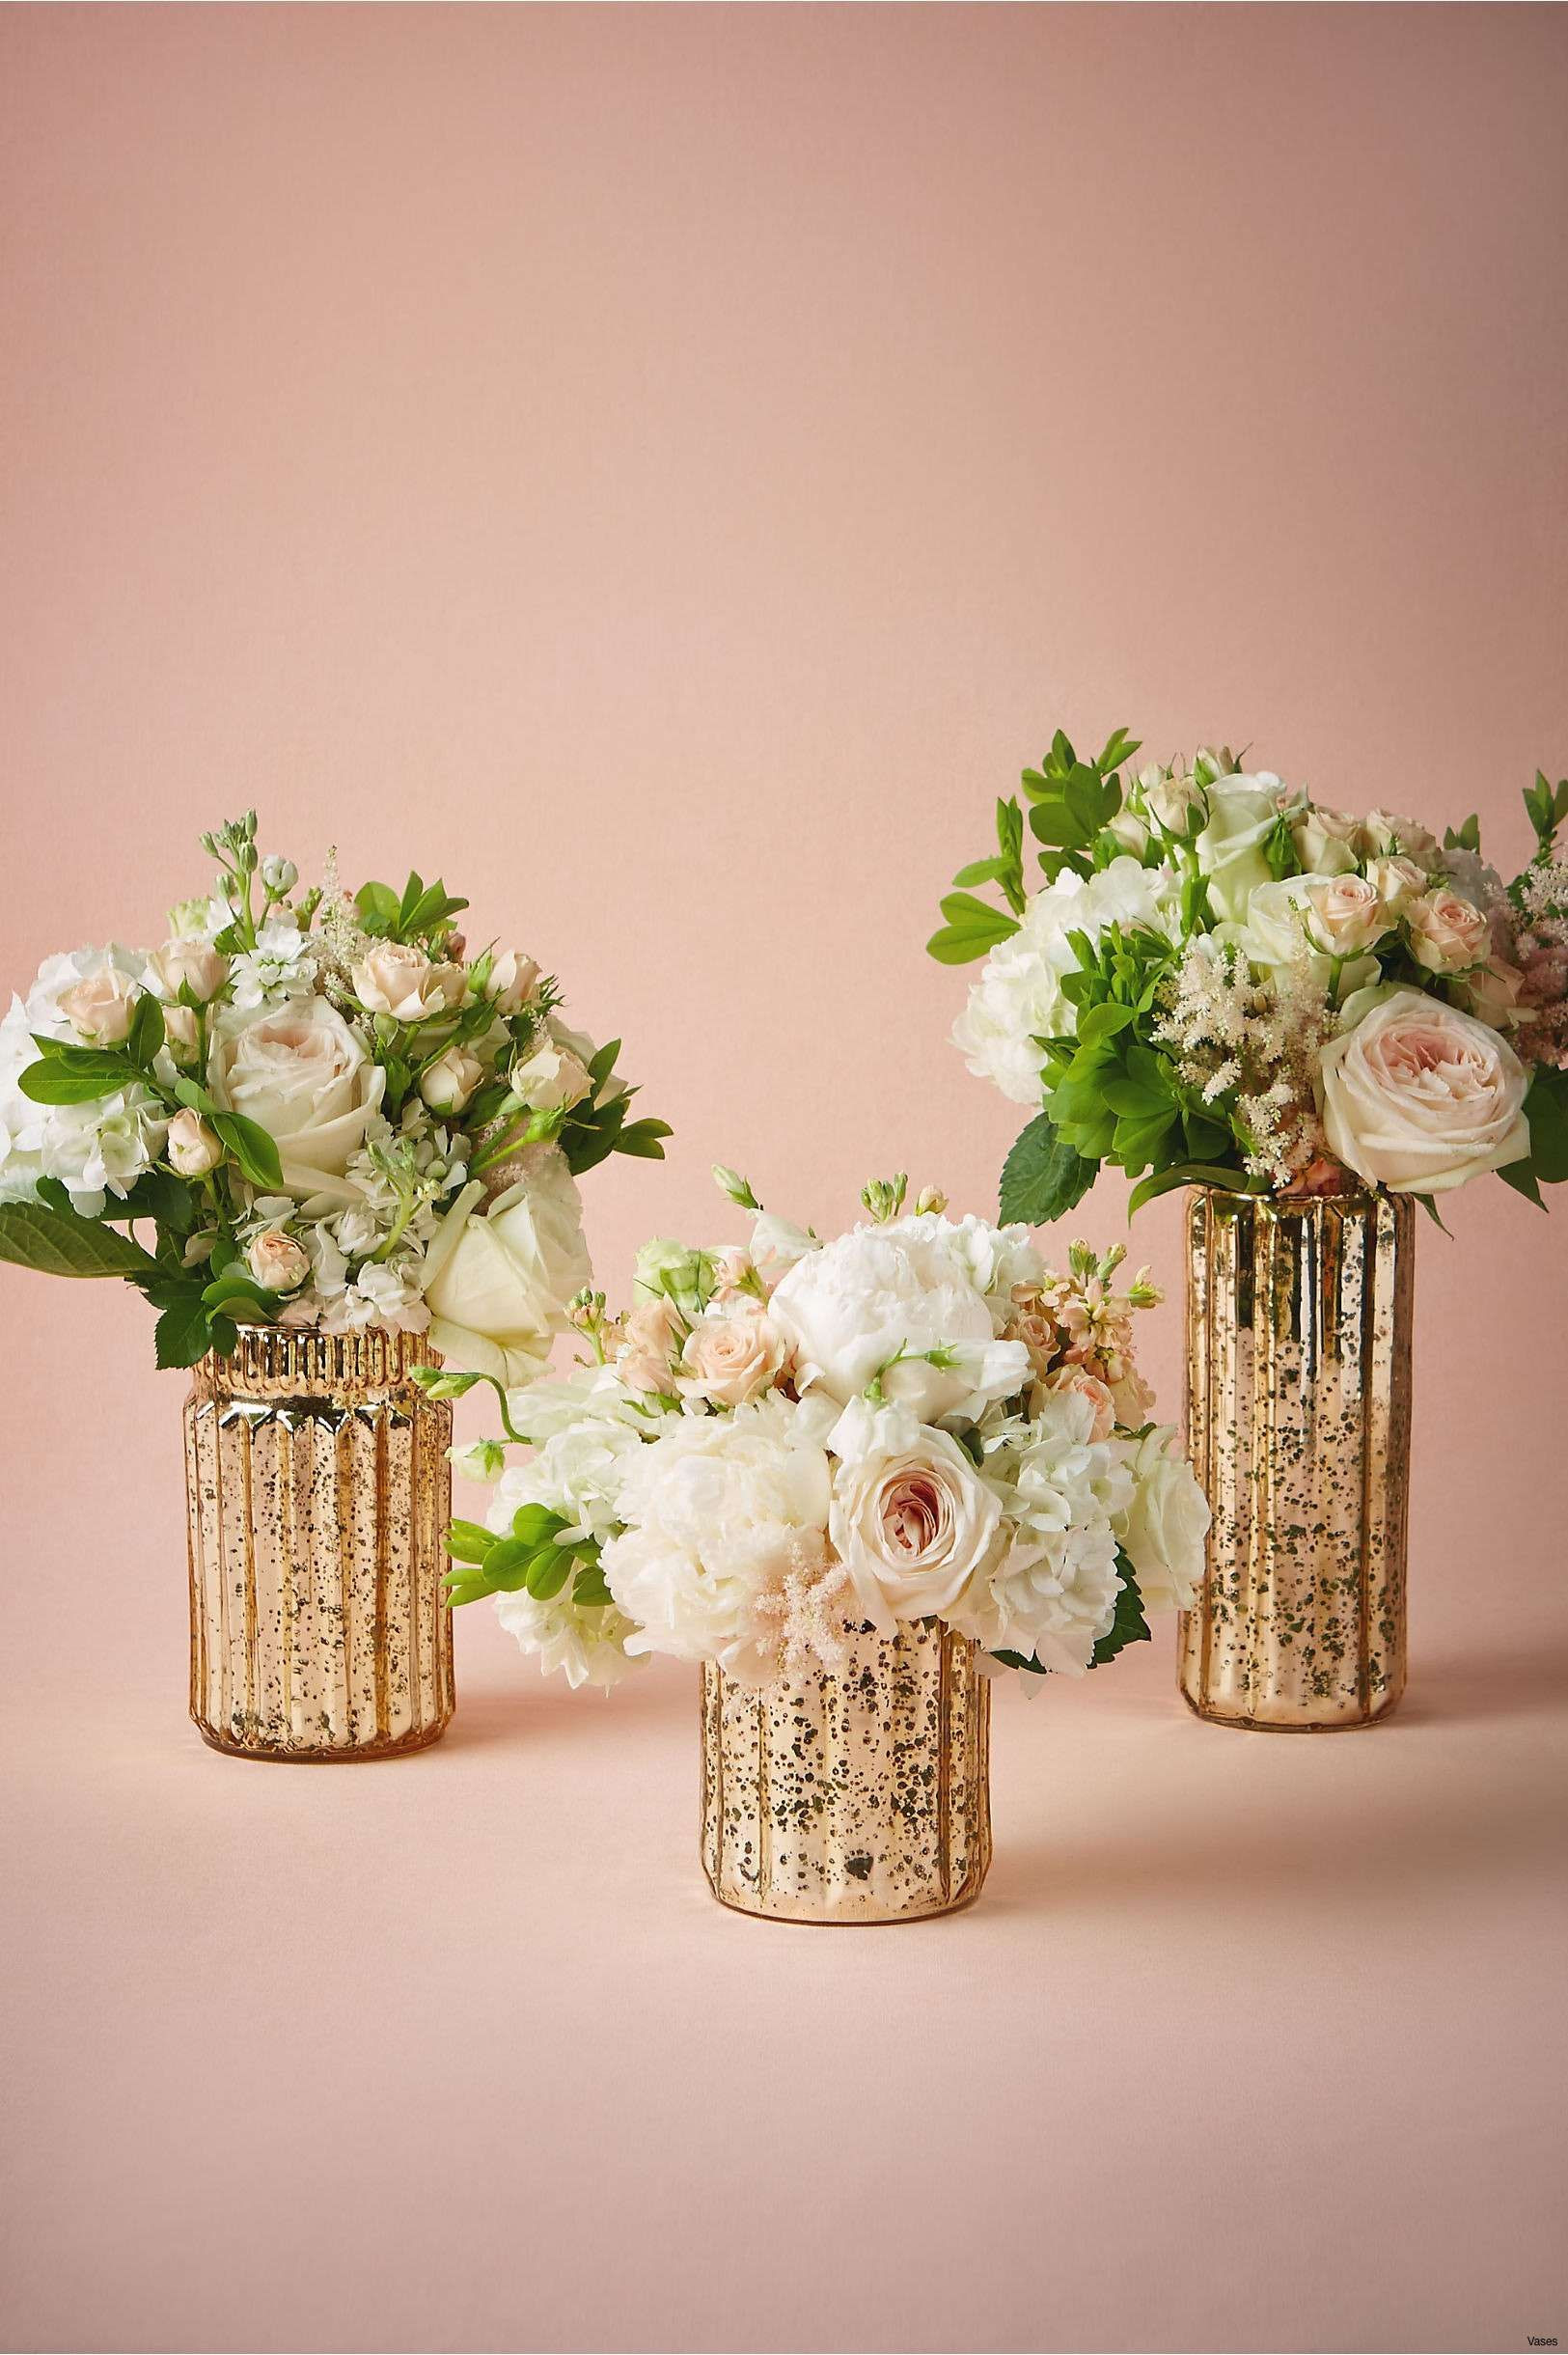 glass vases for weddings of 47 vase centerpiece ideas the weekly world with 6625 1h vases mercury glass cylinder vasesi 0d australia design